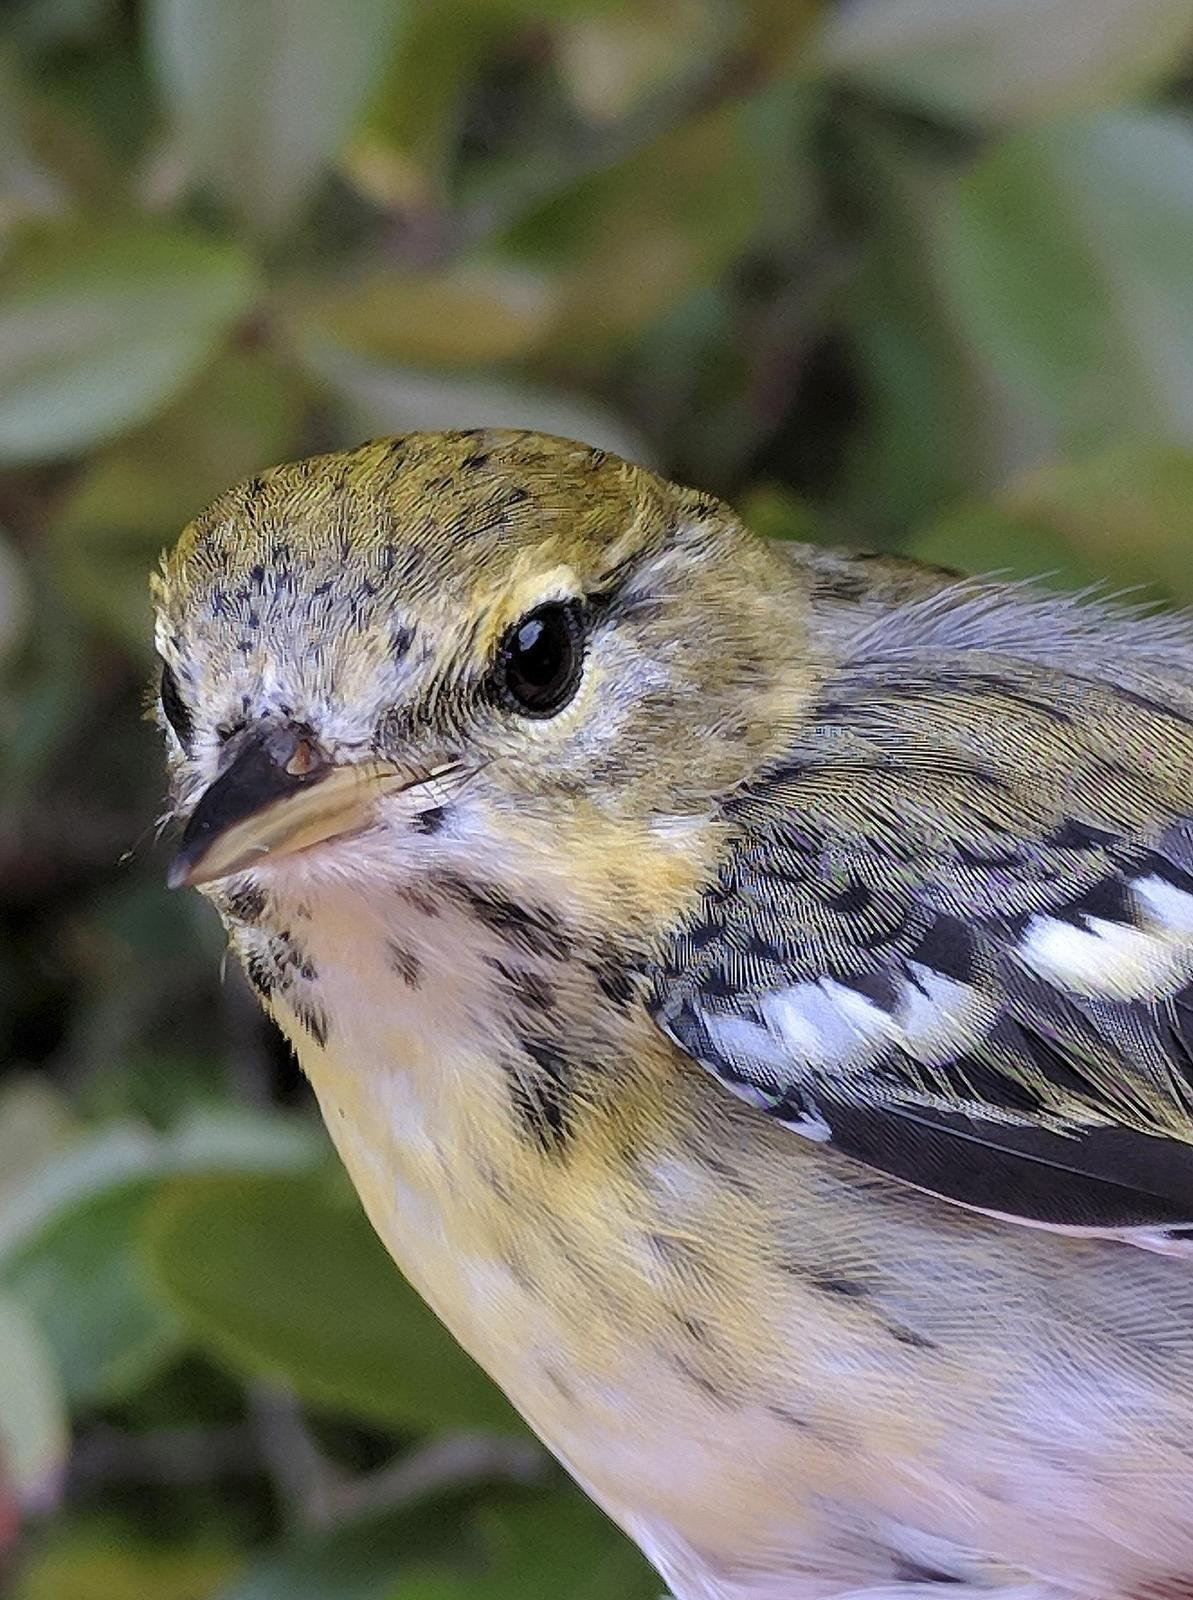 Blackpoll Warbler Photo by Dan Tallman